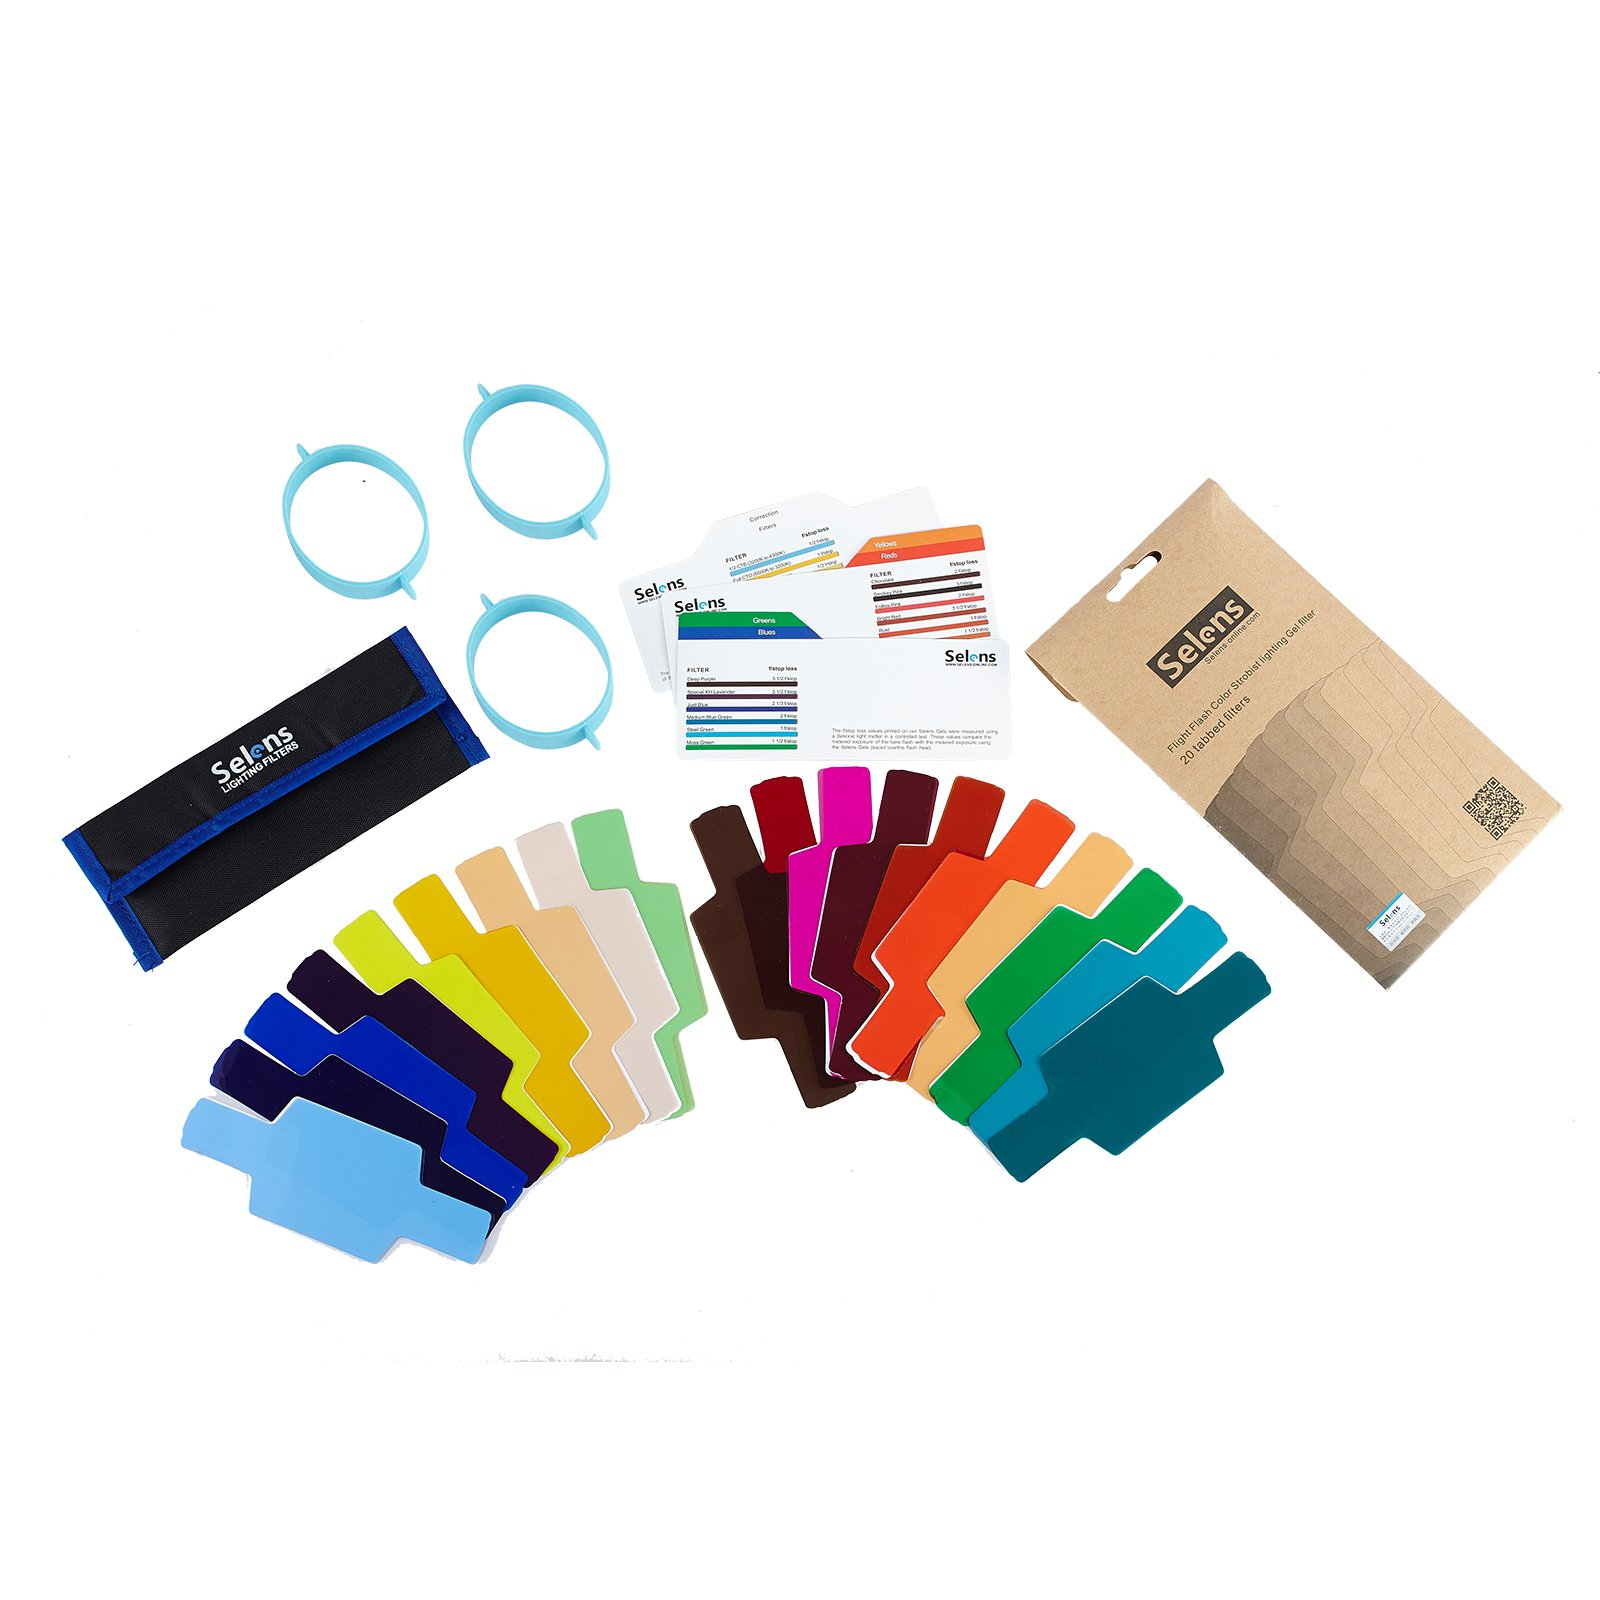 Selens Universal Flash Gels Lighting Filter 20 pcs Combination Kits for Camera Flashlight with 3 Gel-Bands by Selens